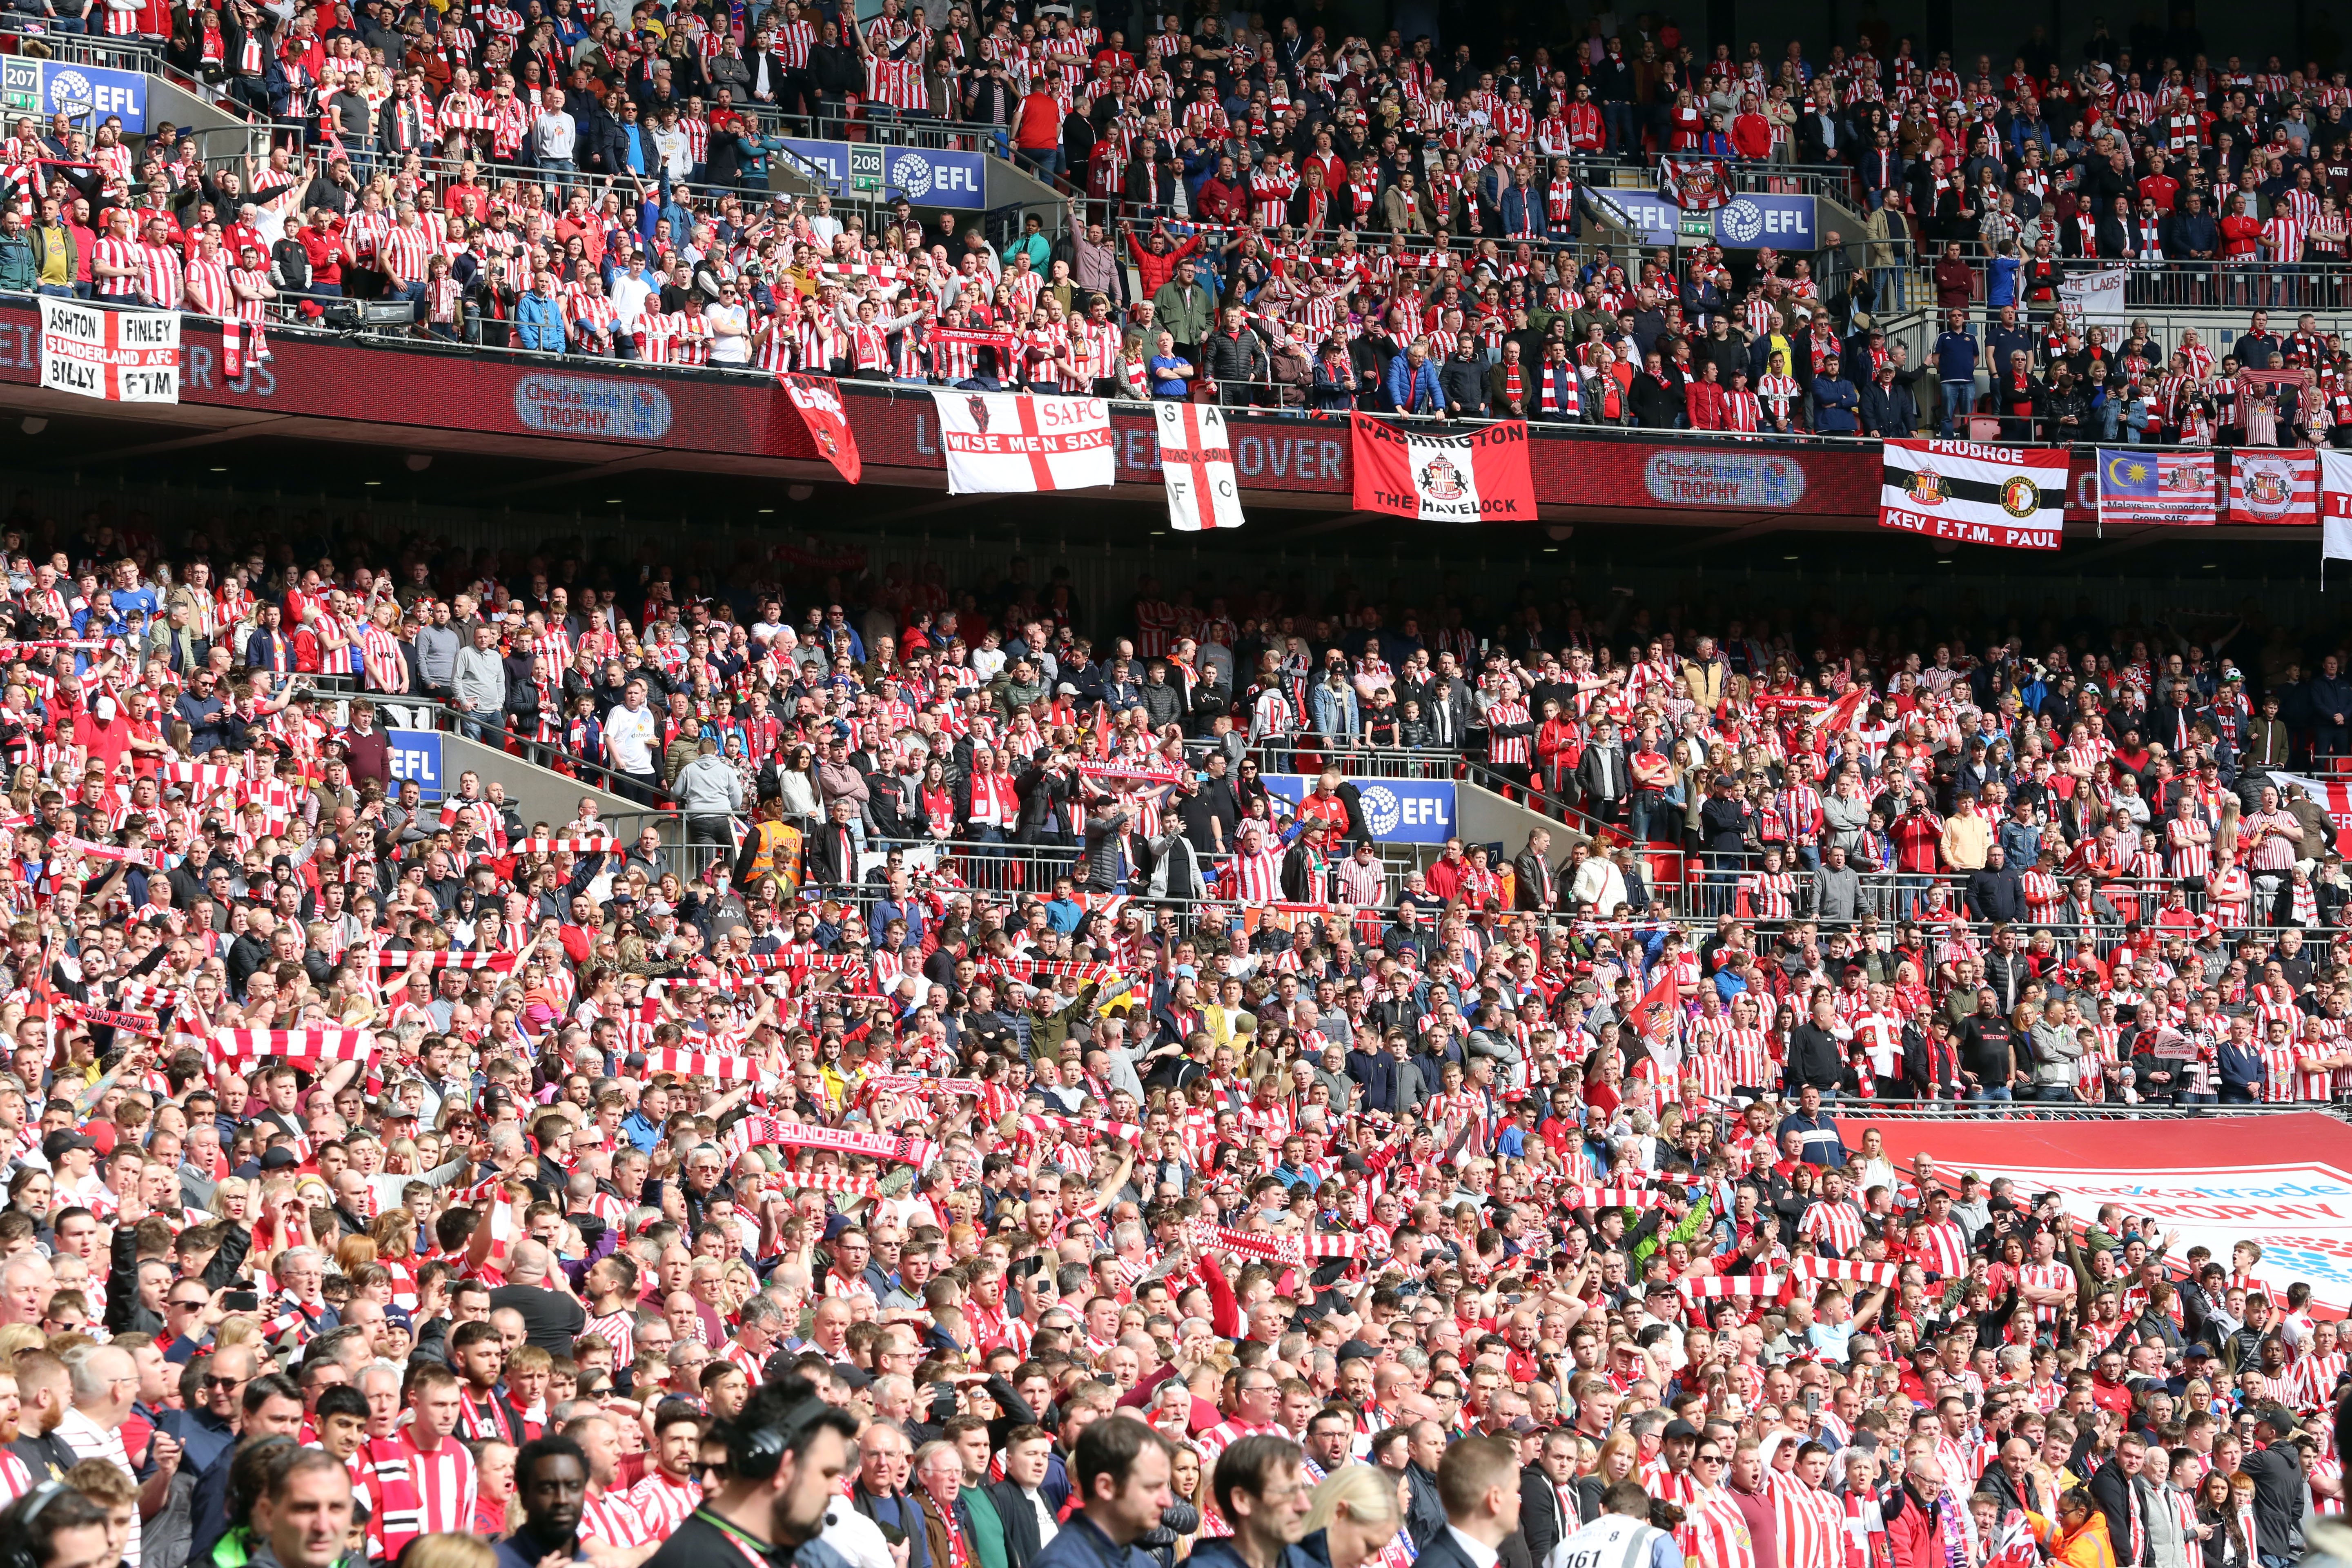 Finlay's Play-Off Preview: Sunderland ninety minutes away from promotion! Ha'way the Lads!